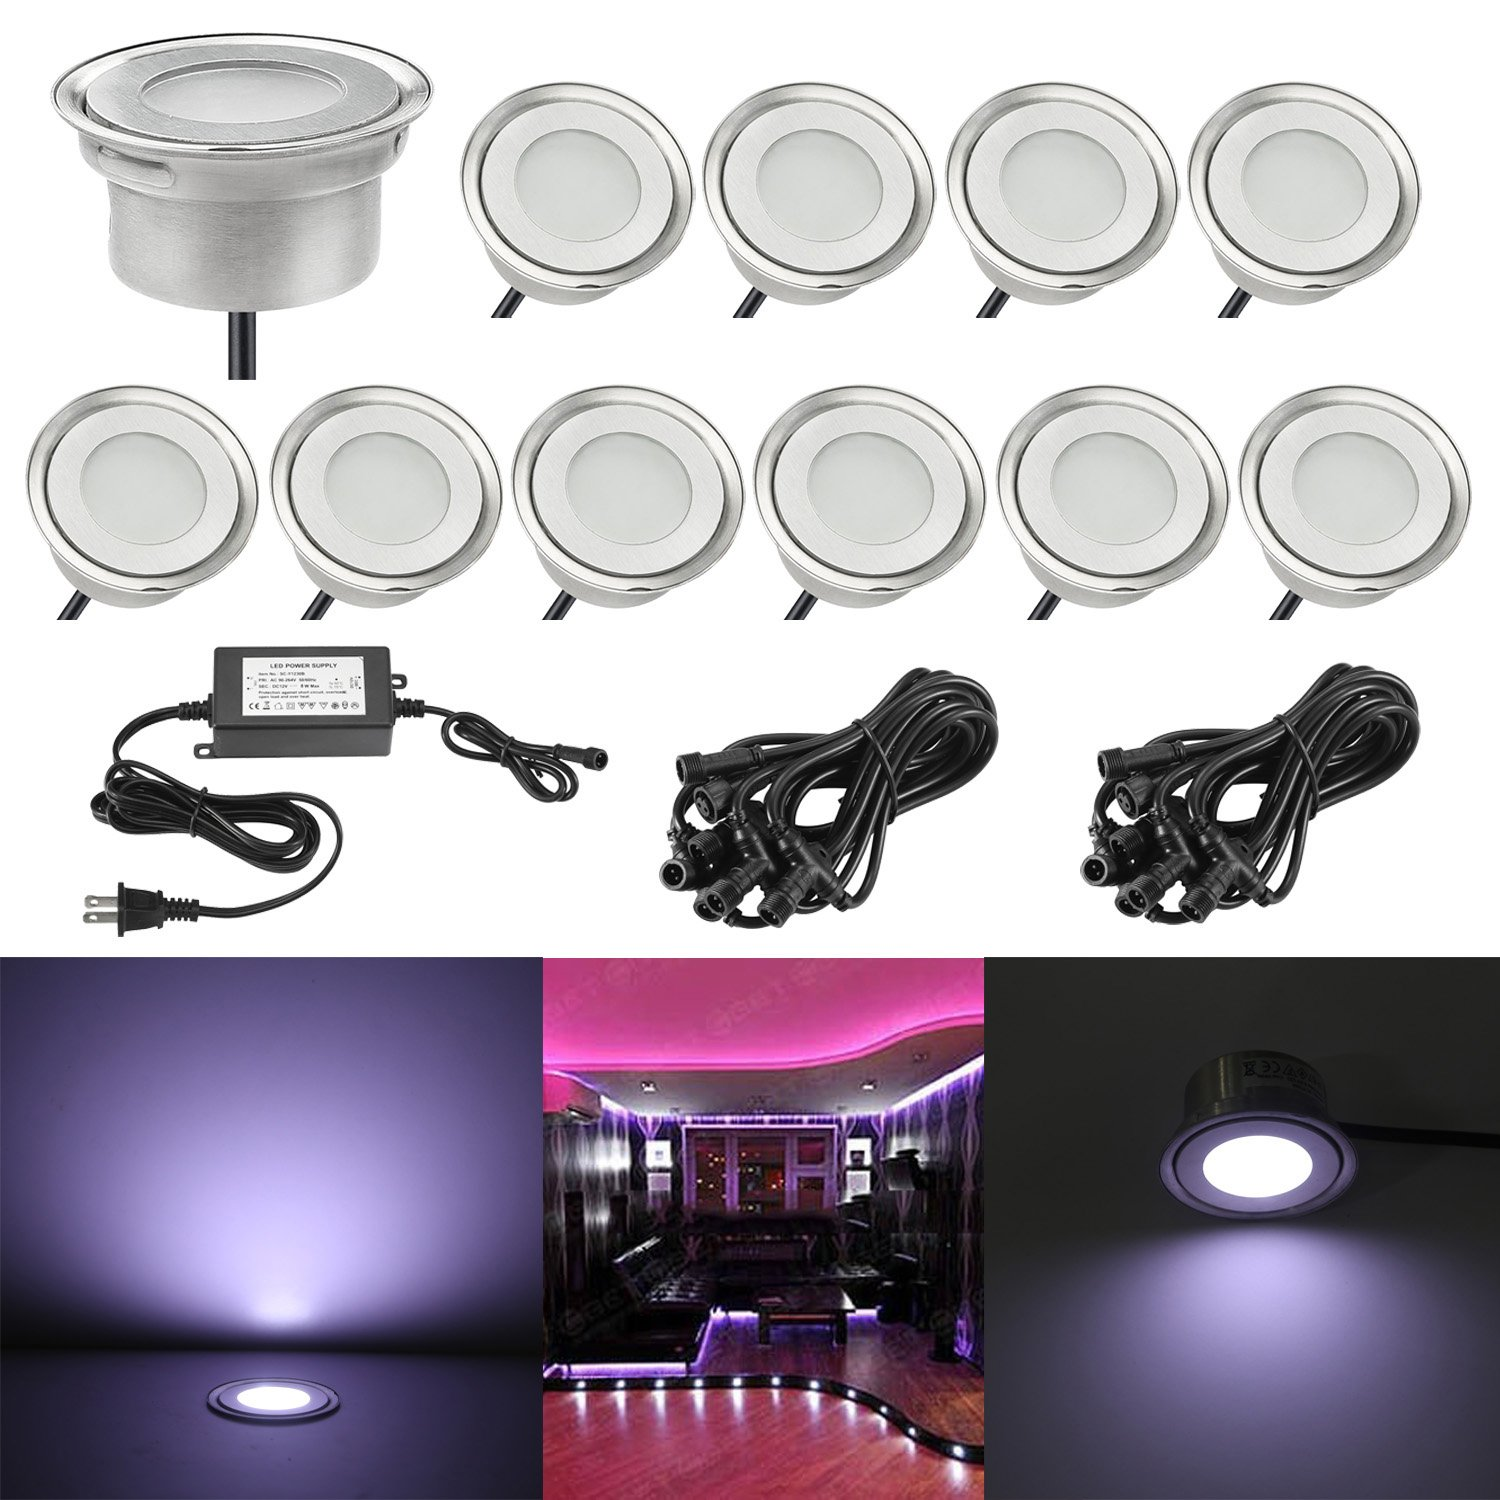 Low Voltage Landscape Lights, QACA 10pcs Outdoor Ground Deck Light LED Uplighting Garden Path Step Lignting for Pool Pathway Walkway Driveway Landscape IP67 Waterproof (Cool White)